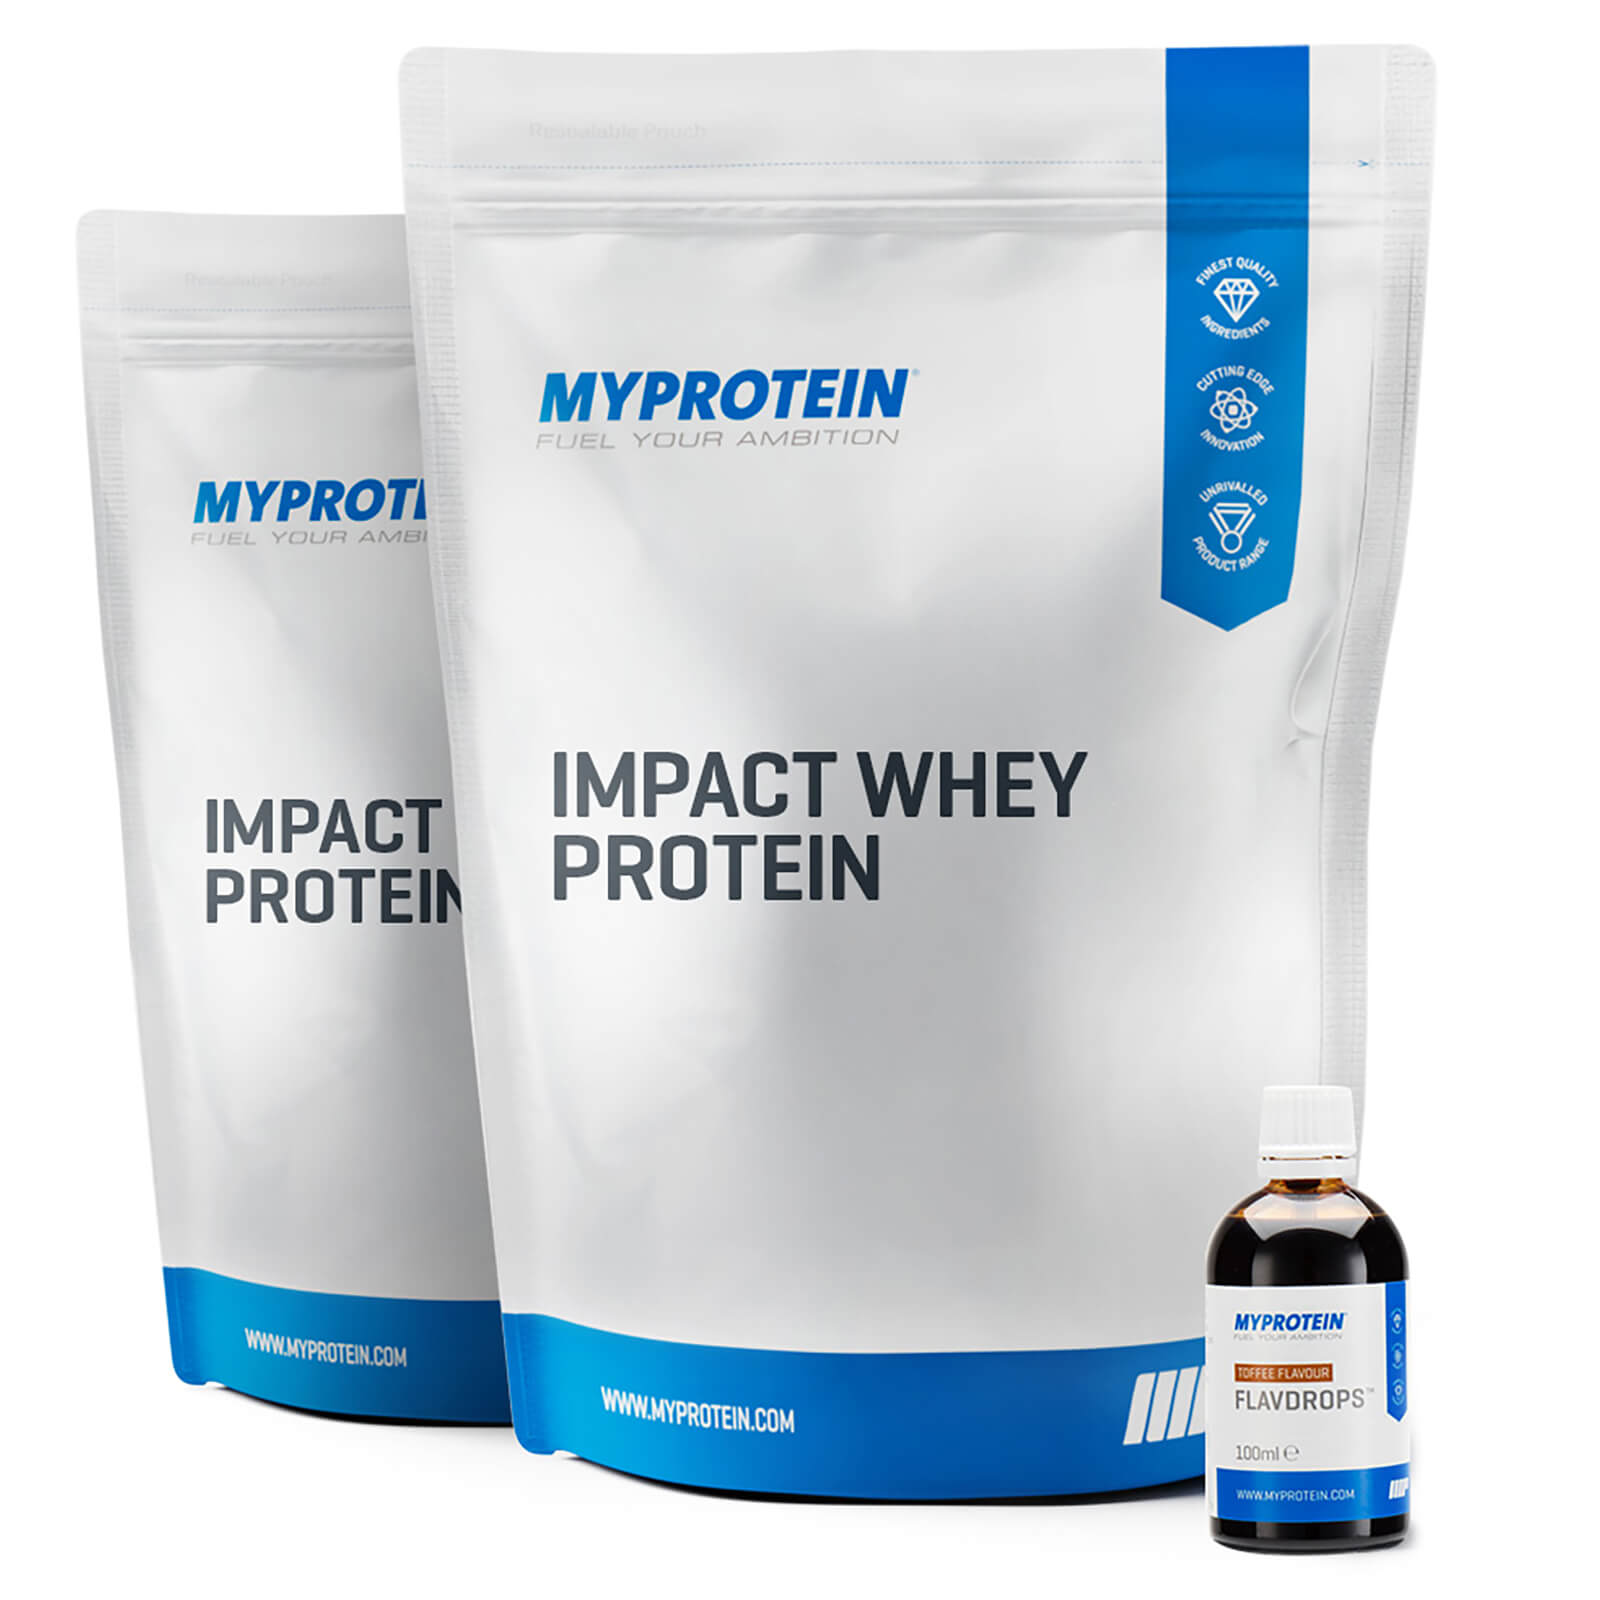 2xImpact Whey Protein + Flavdrops Bundle